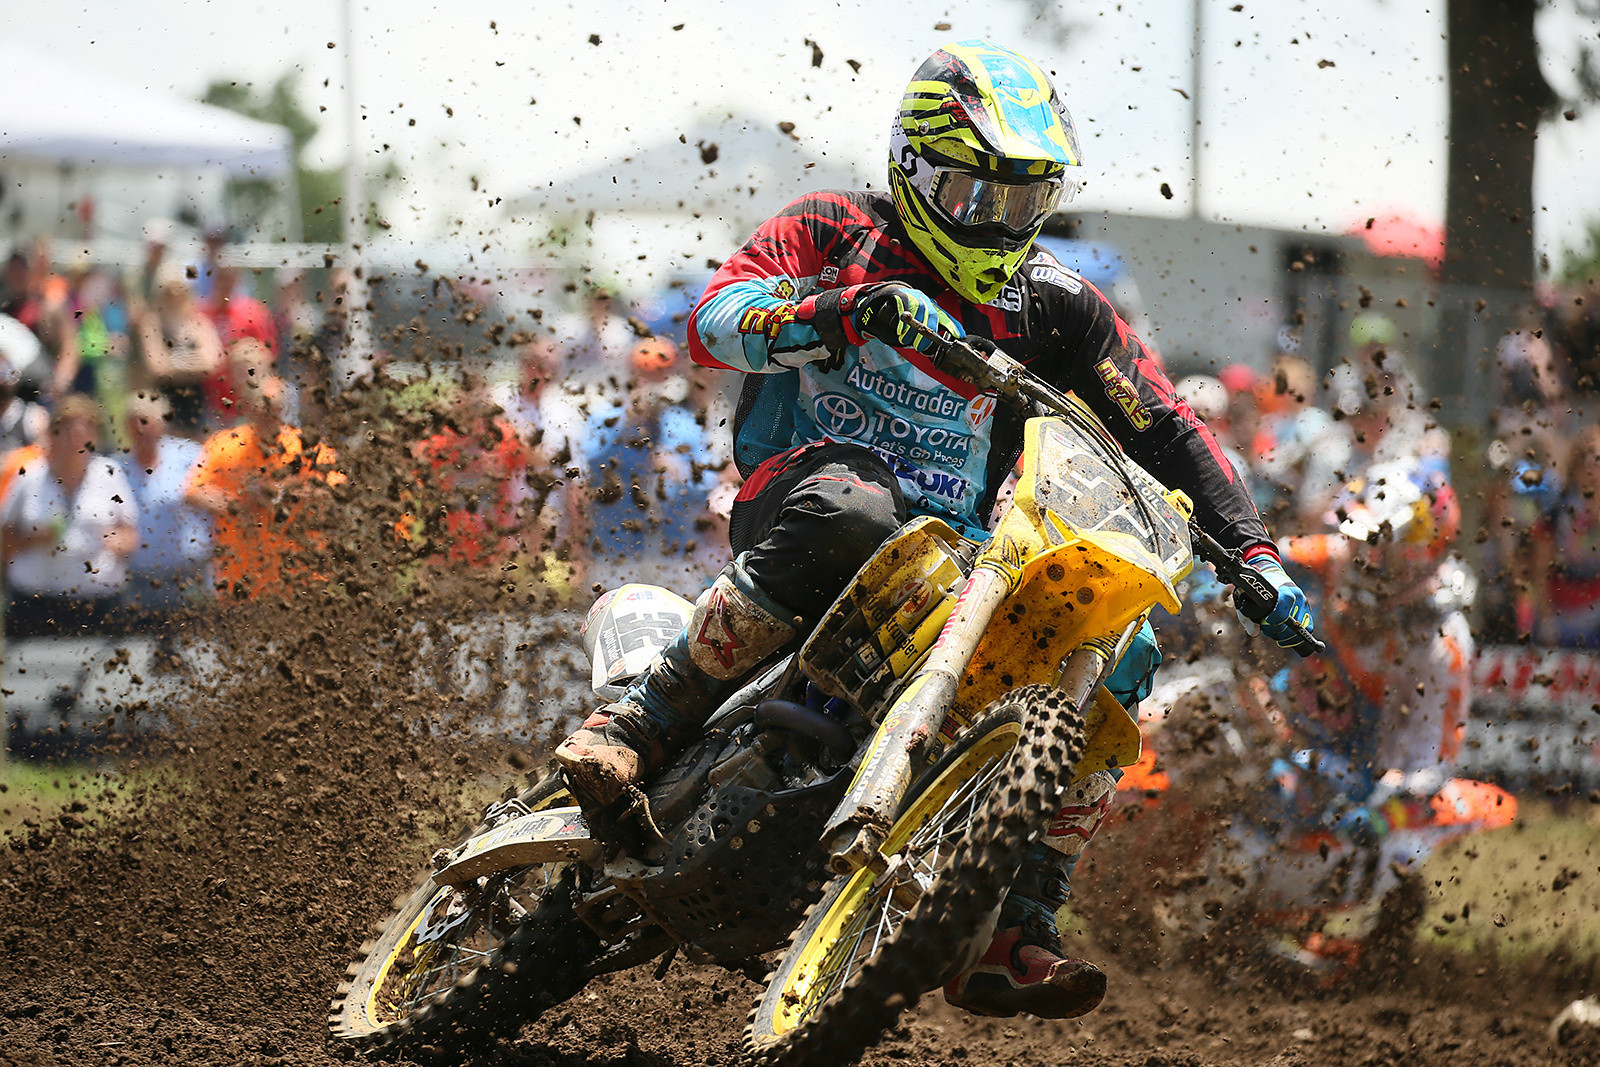 Weston Peick made some waves at Muddy Creek, with a solid pair of fourth-place moto finishes.